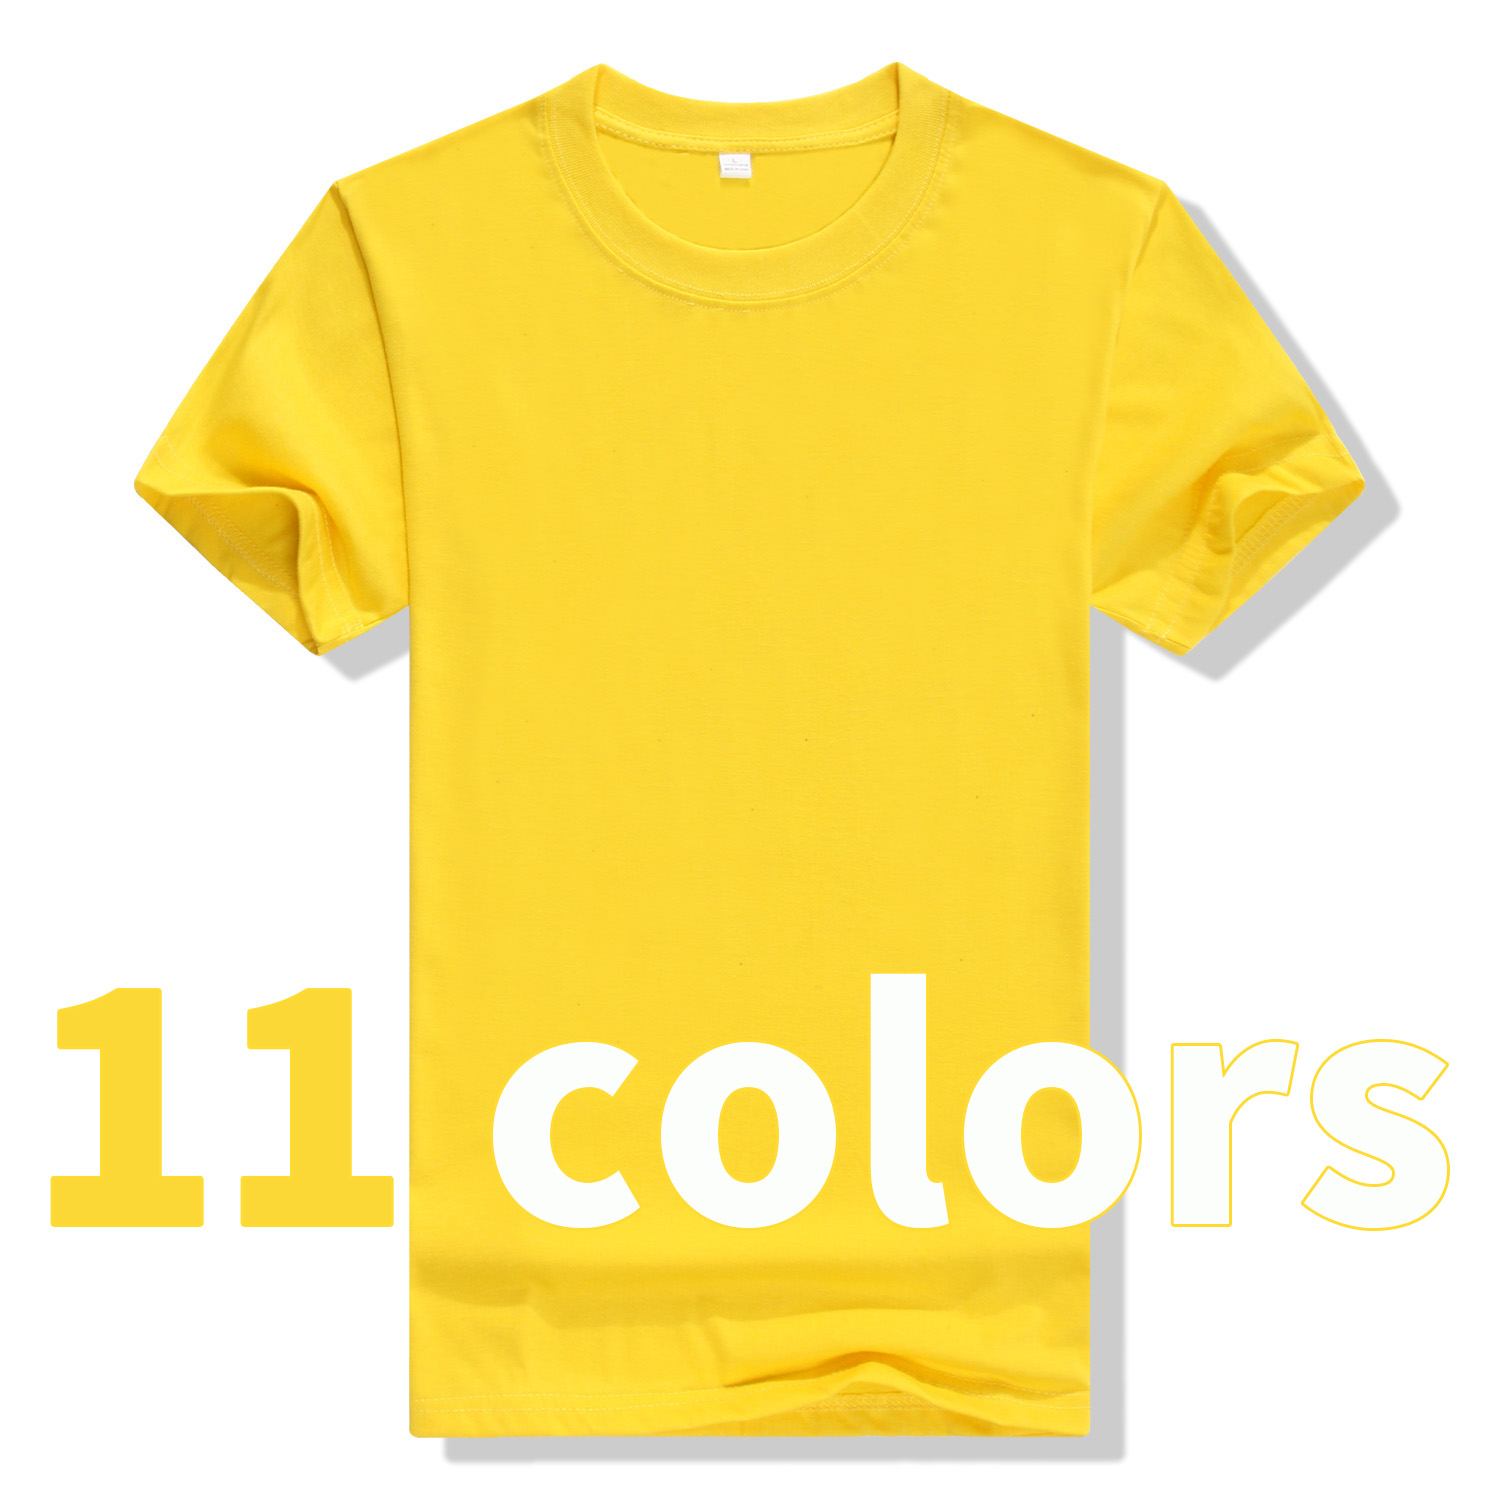 2019 New Solid Color T Shirt Mens Black And Yellow T-shirts Summer Skateboard Tee Boy Skate Tshirt Tops 301 S-8